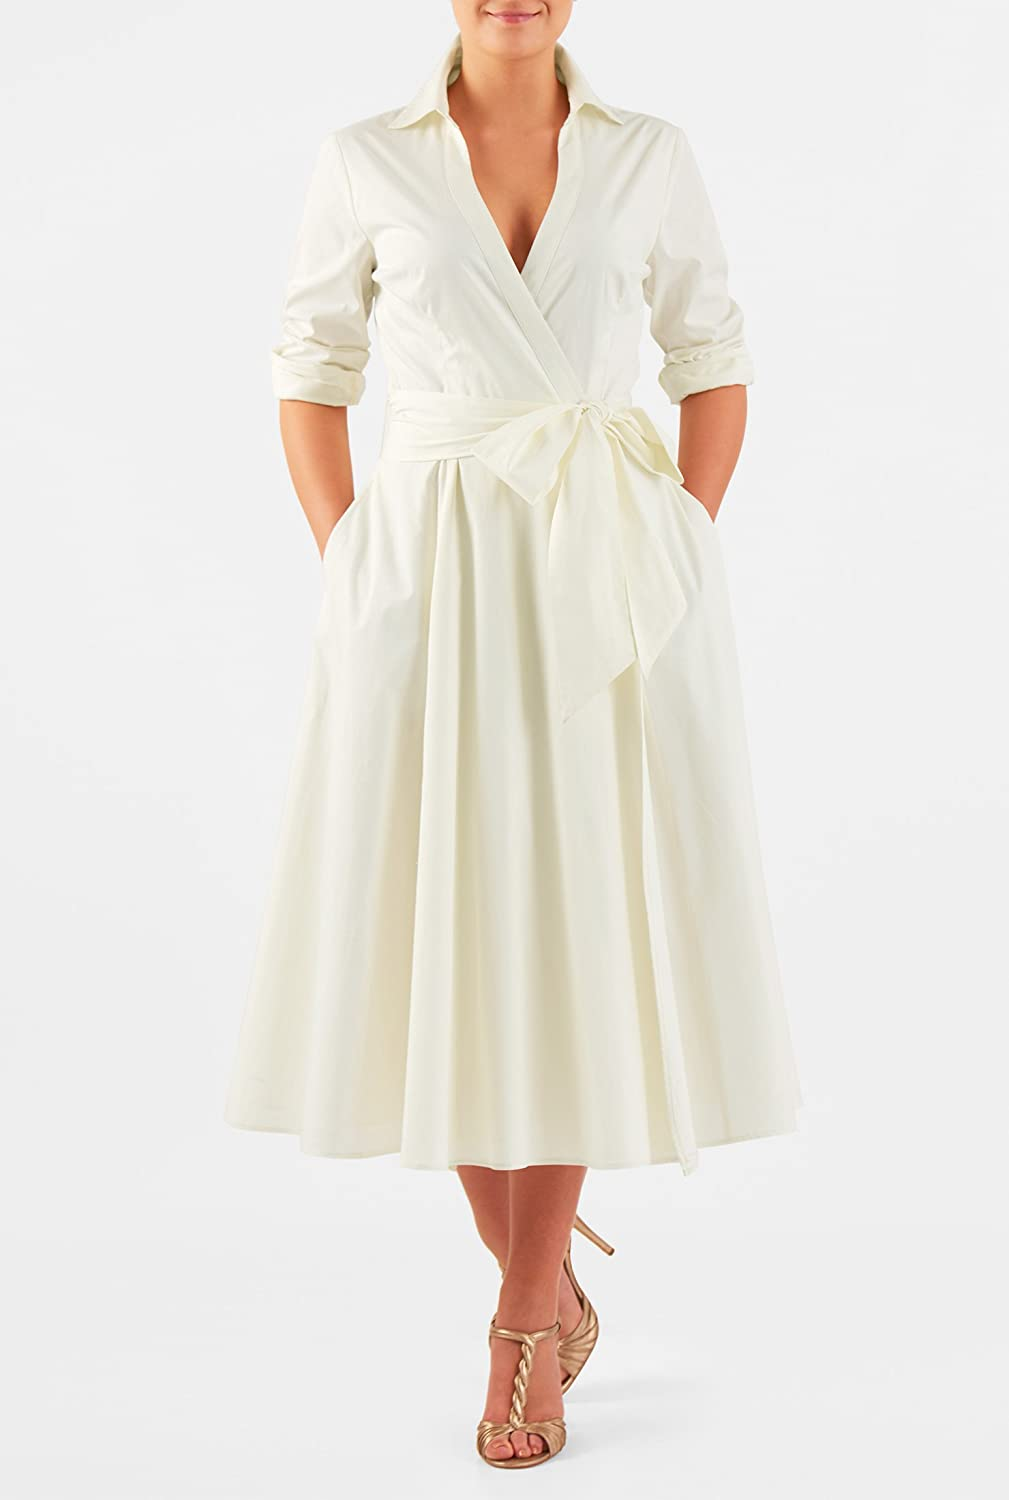 Vintage Inspired Wedding Dresses eShakti Womens Cotton poplin sash tie wrap dress $52.95 AT vintagedancer.com